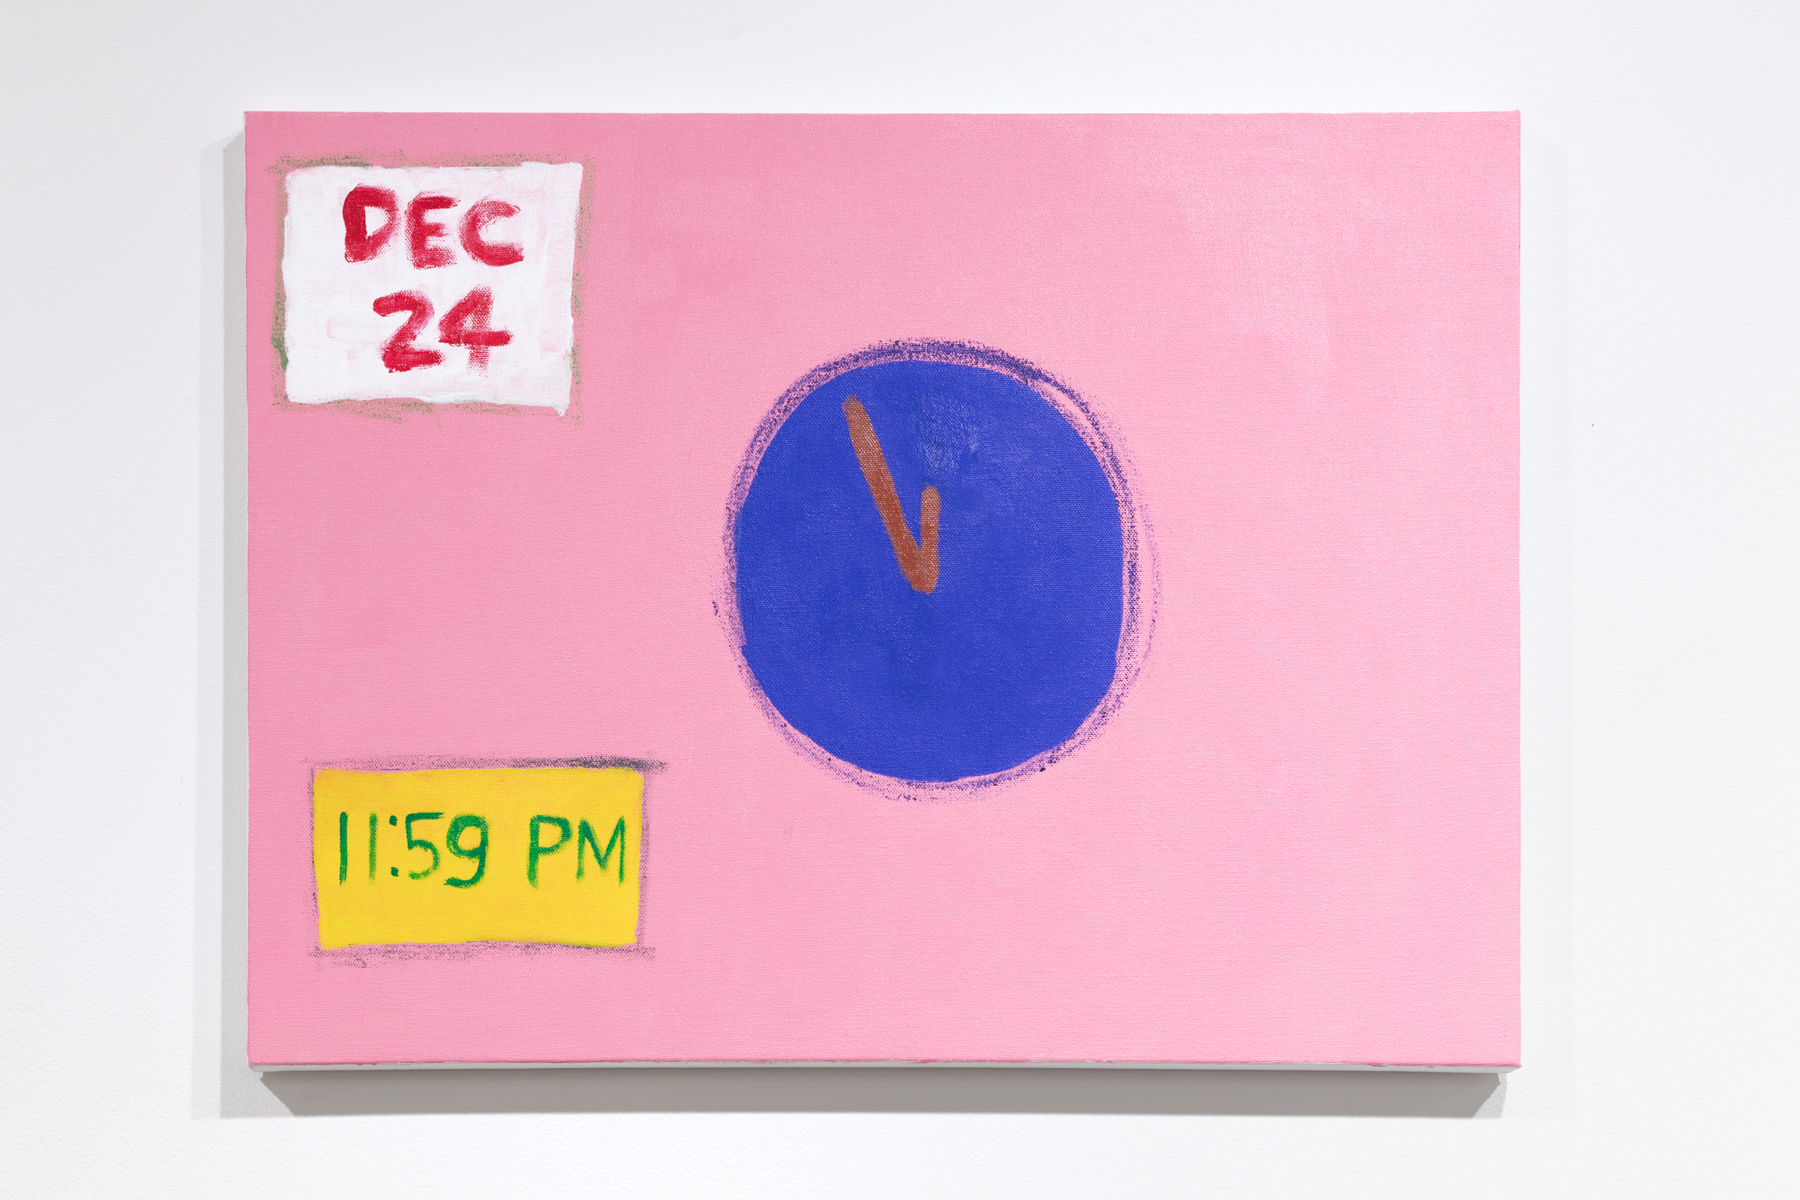 """A painting by Claude R. Jeong. The painting depicts a circular shape in the center that resembles a clock without numbers. In the lower left corner is a yellow box with """"11:59 PM"""" painted in green. In the top left corner there is a white box with """"Dec 24"""" painted in red. The background is pink."""